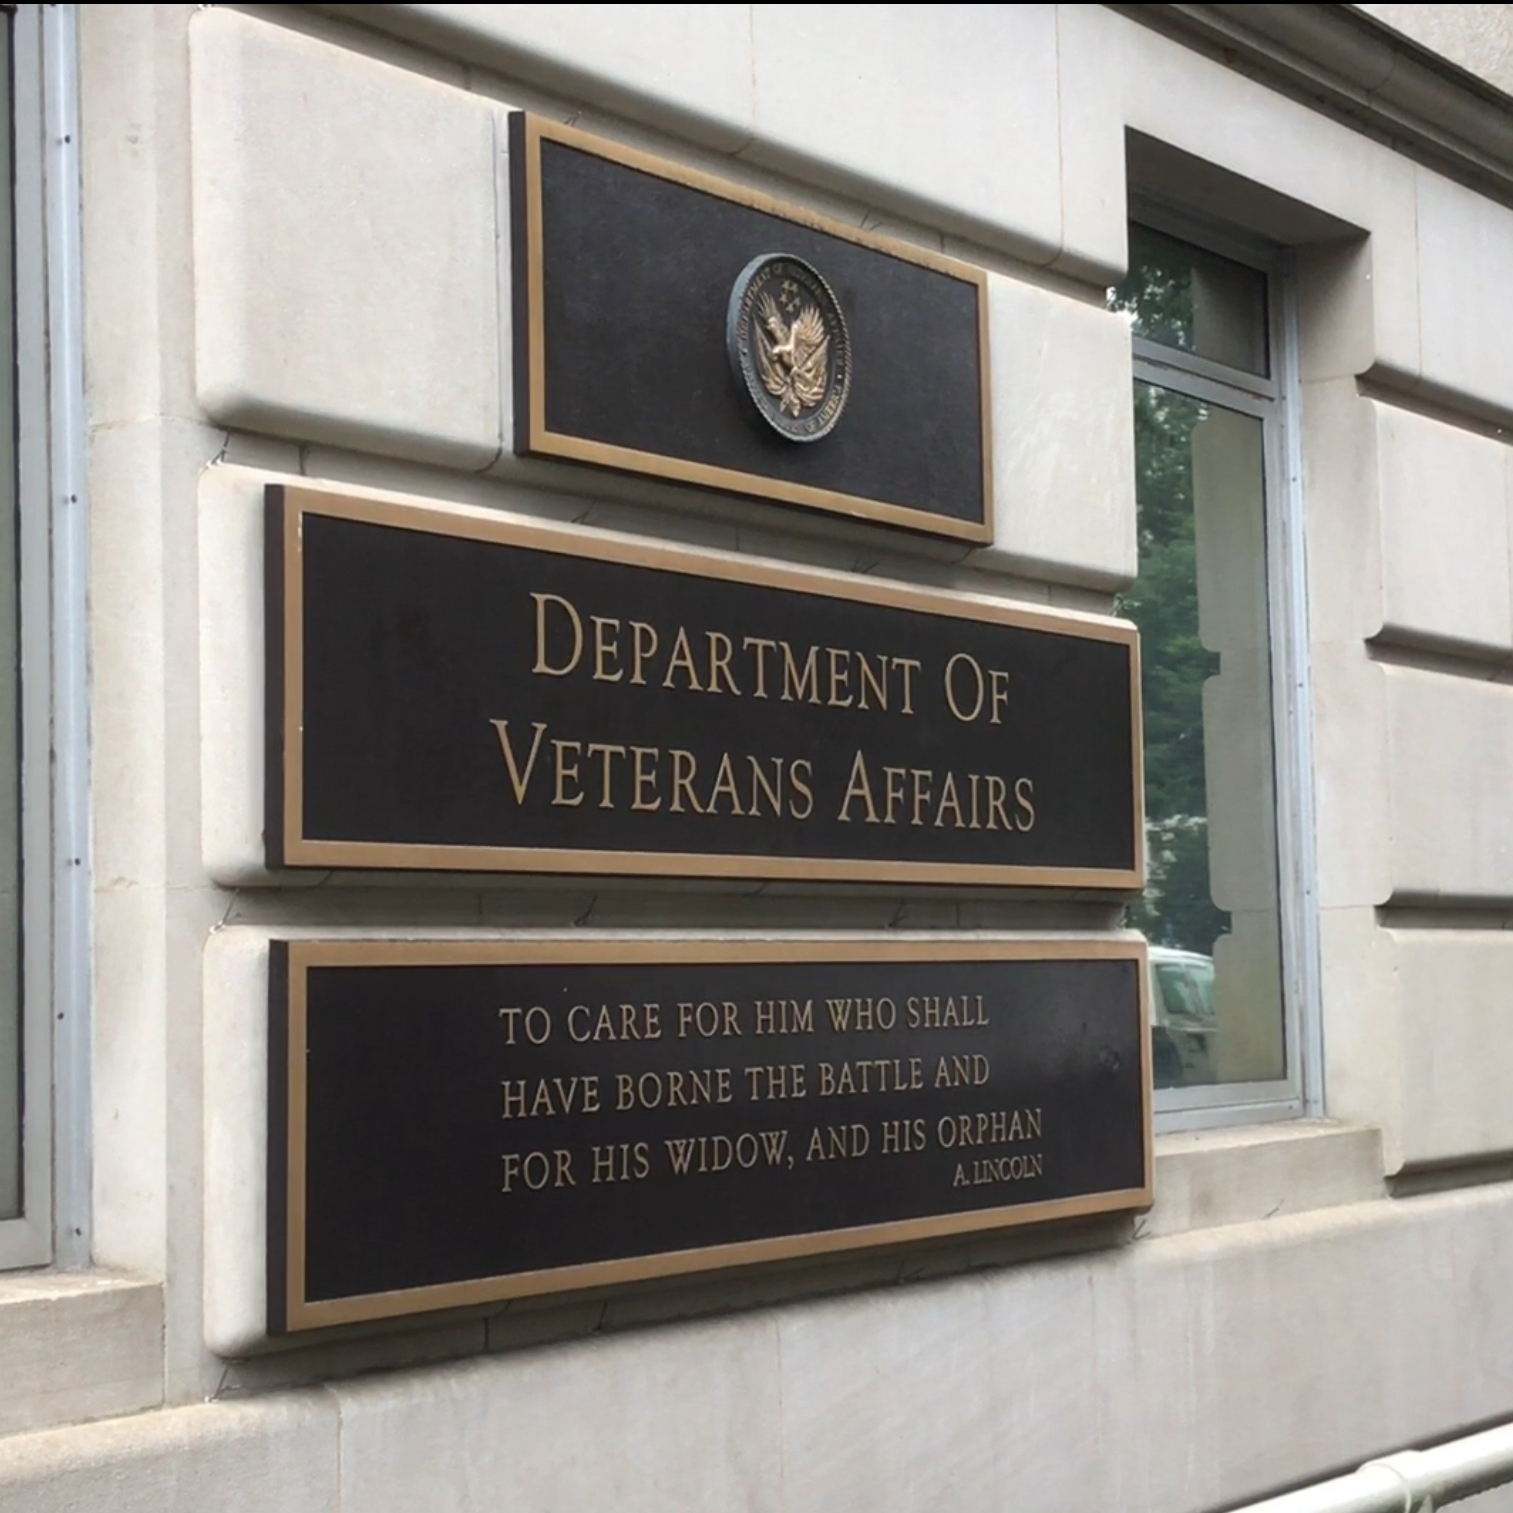 How To Privatize the VA - VHPI Senior Analyst Suzanne Gordon outlines the steps taken to successfully privatize the VHA. Read more >>